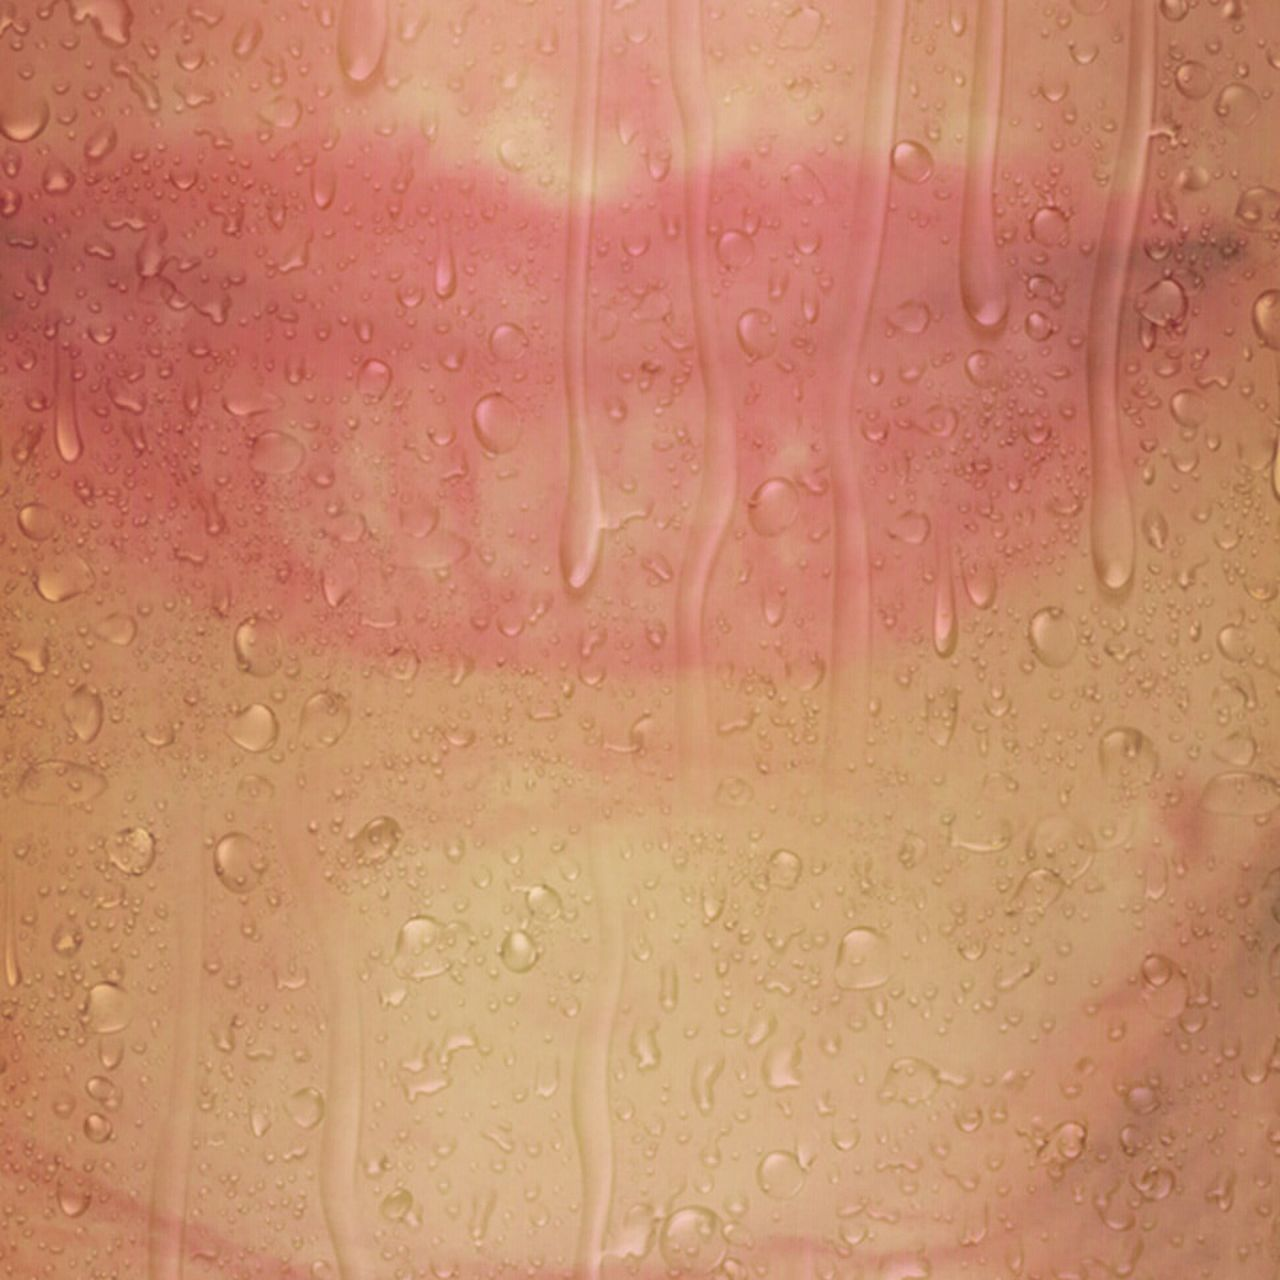 Hello World That's Me Natural Beauty Showering Lookingthroughtheglass Lips #love #smile #pink #cute #pretty Enjoying Life Life In Motion Selfie ✌ Sharing A Moment Taking Photos Hi Soft Grunge Full Frame Temptation